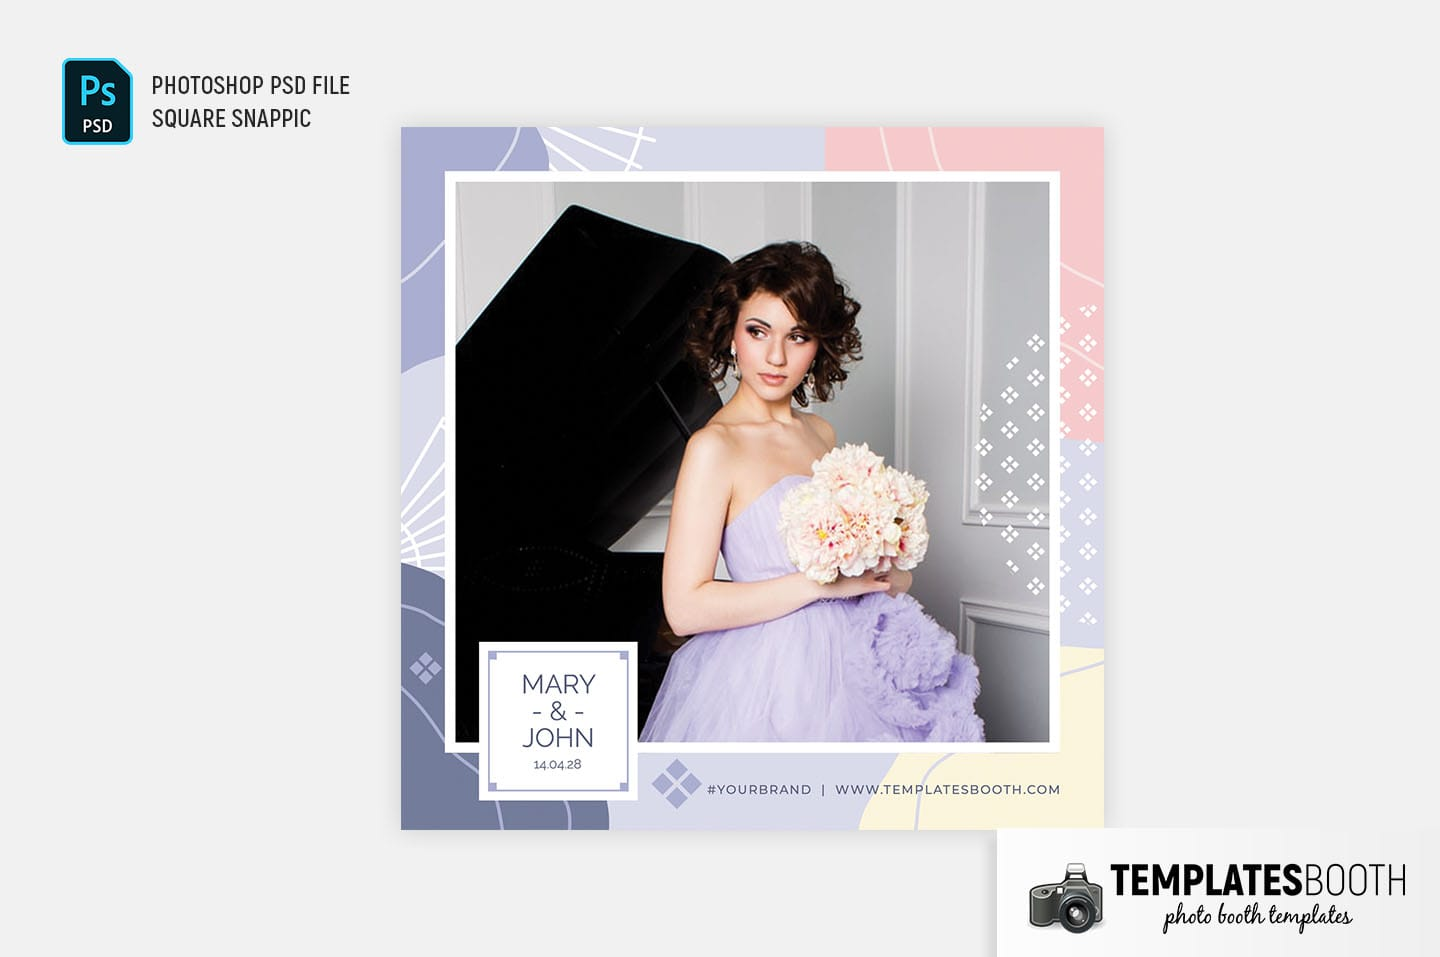 Abstract Pastel Photo Booth Template (Snappic)